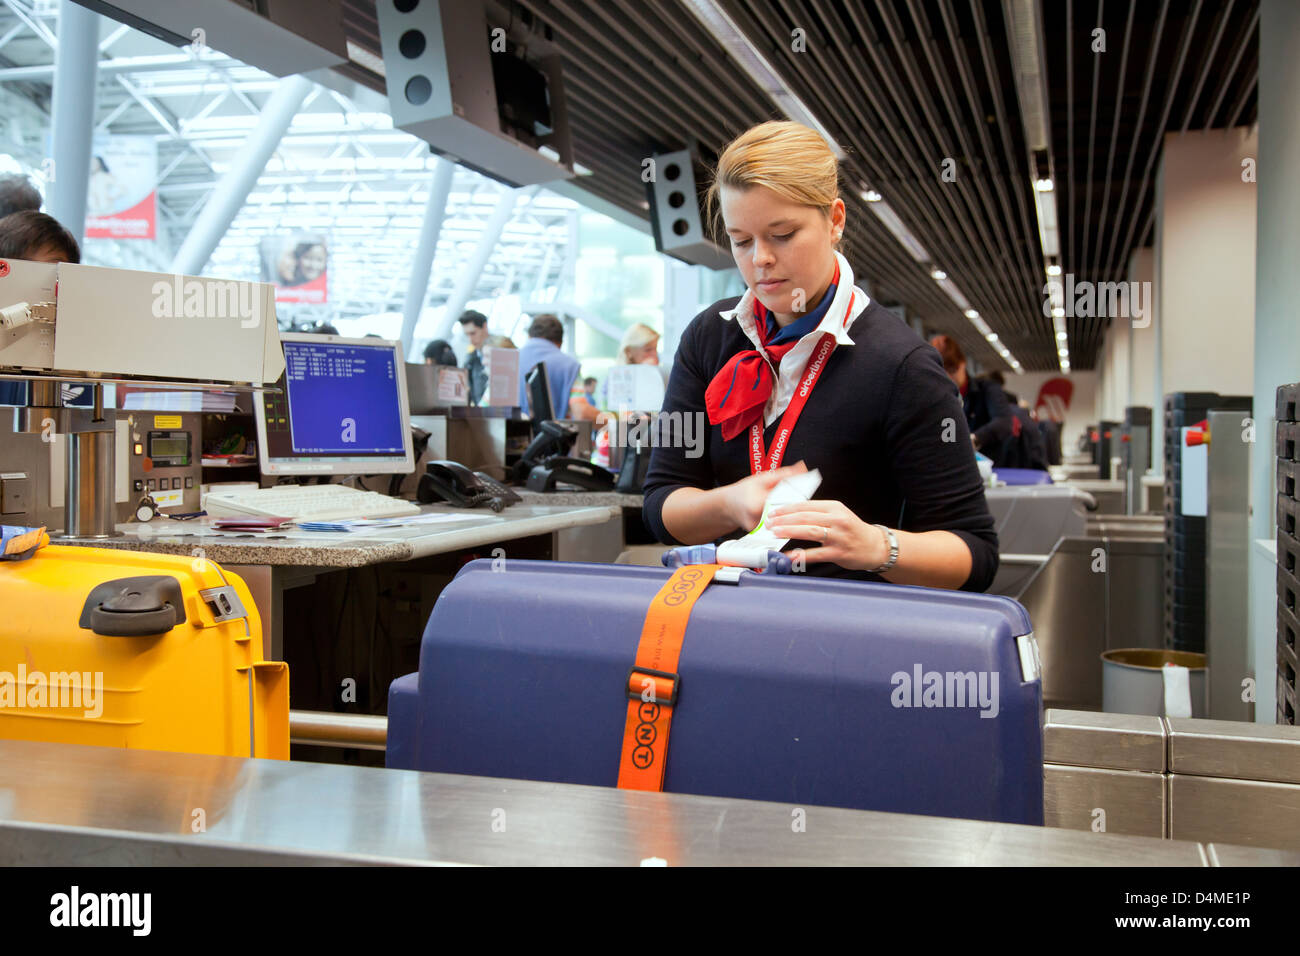 Düsseldorf, Allemagne, du personnel au sol de airberlin check-in à l'aéroport international de Photo Stock